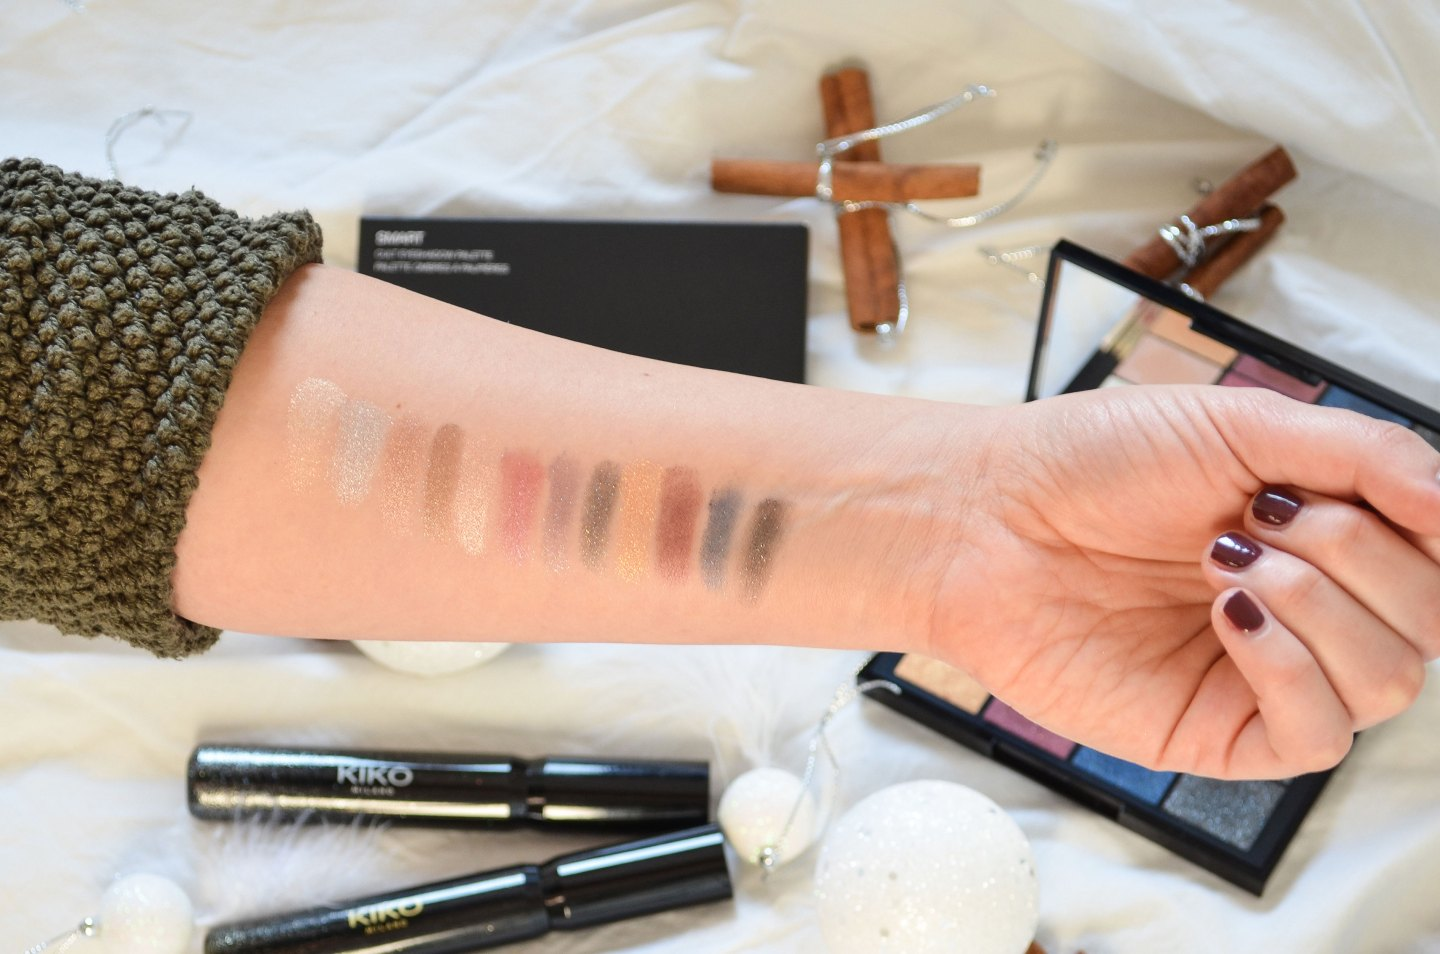 Kiko Smart Cult Eyeshadow Palette Review